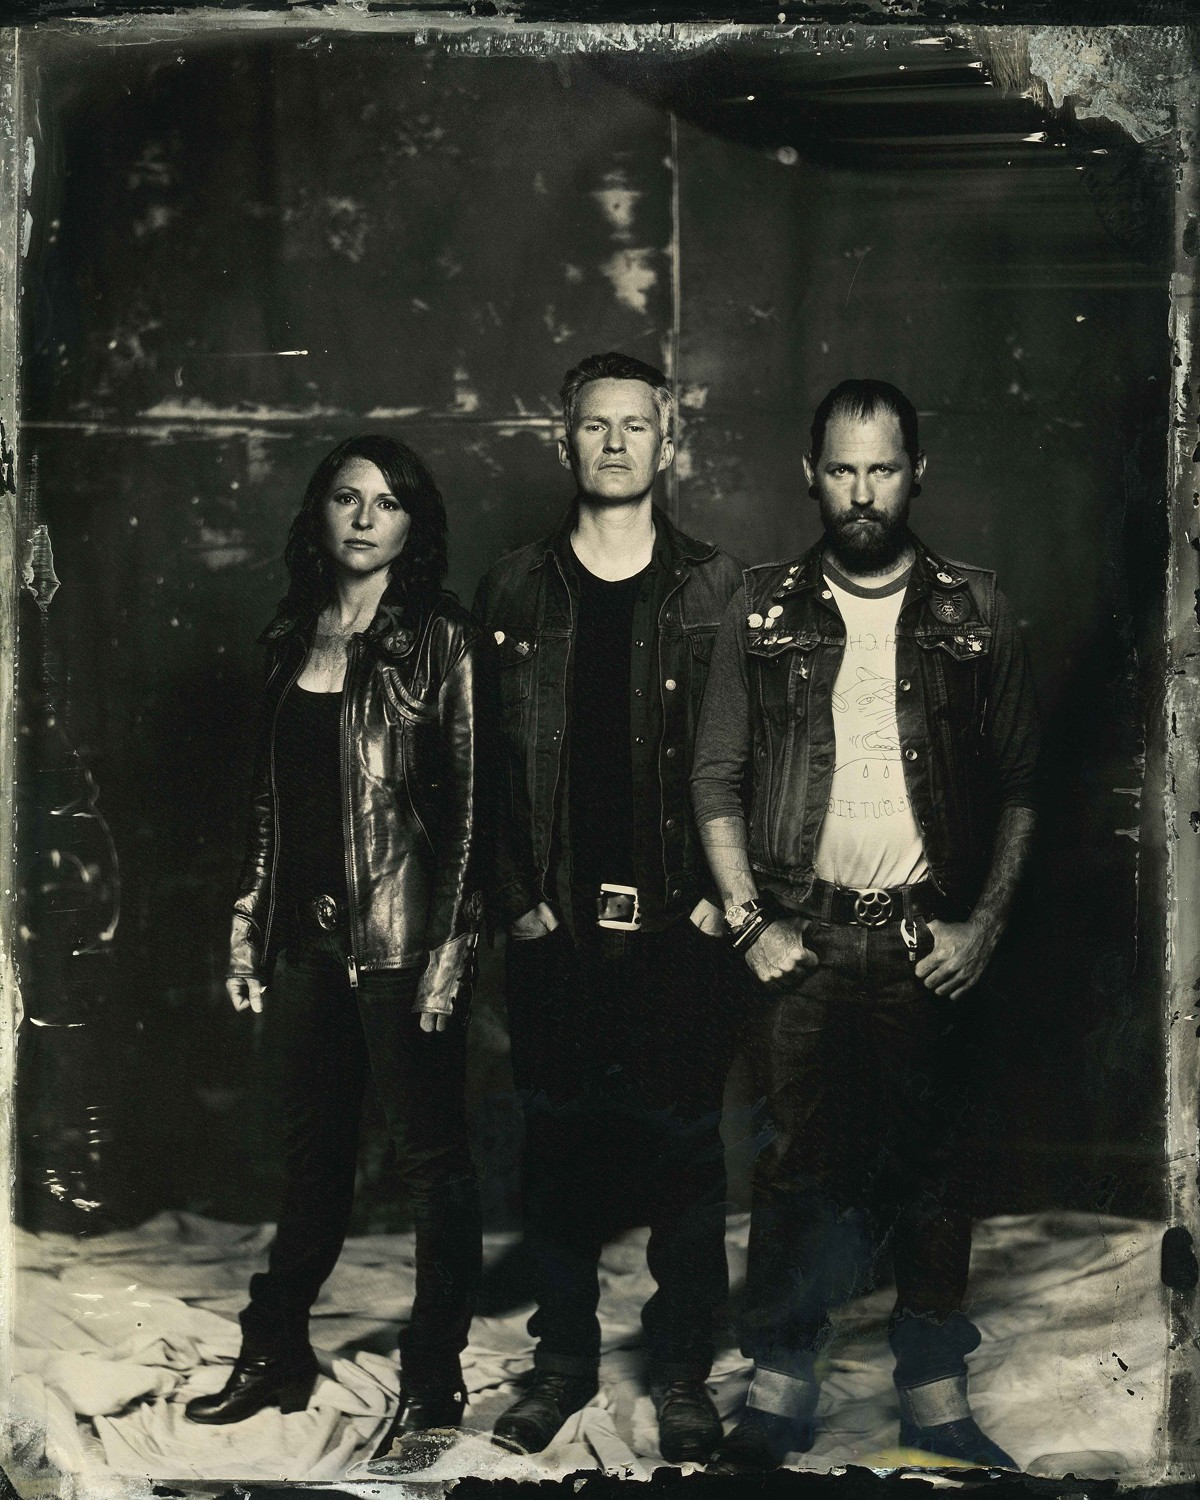 band-to-watch-dm3-tintype-21-gilesclement.jpg